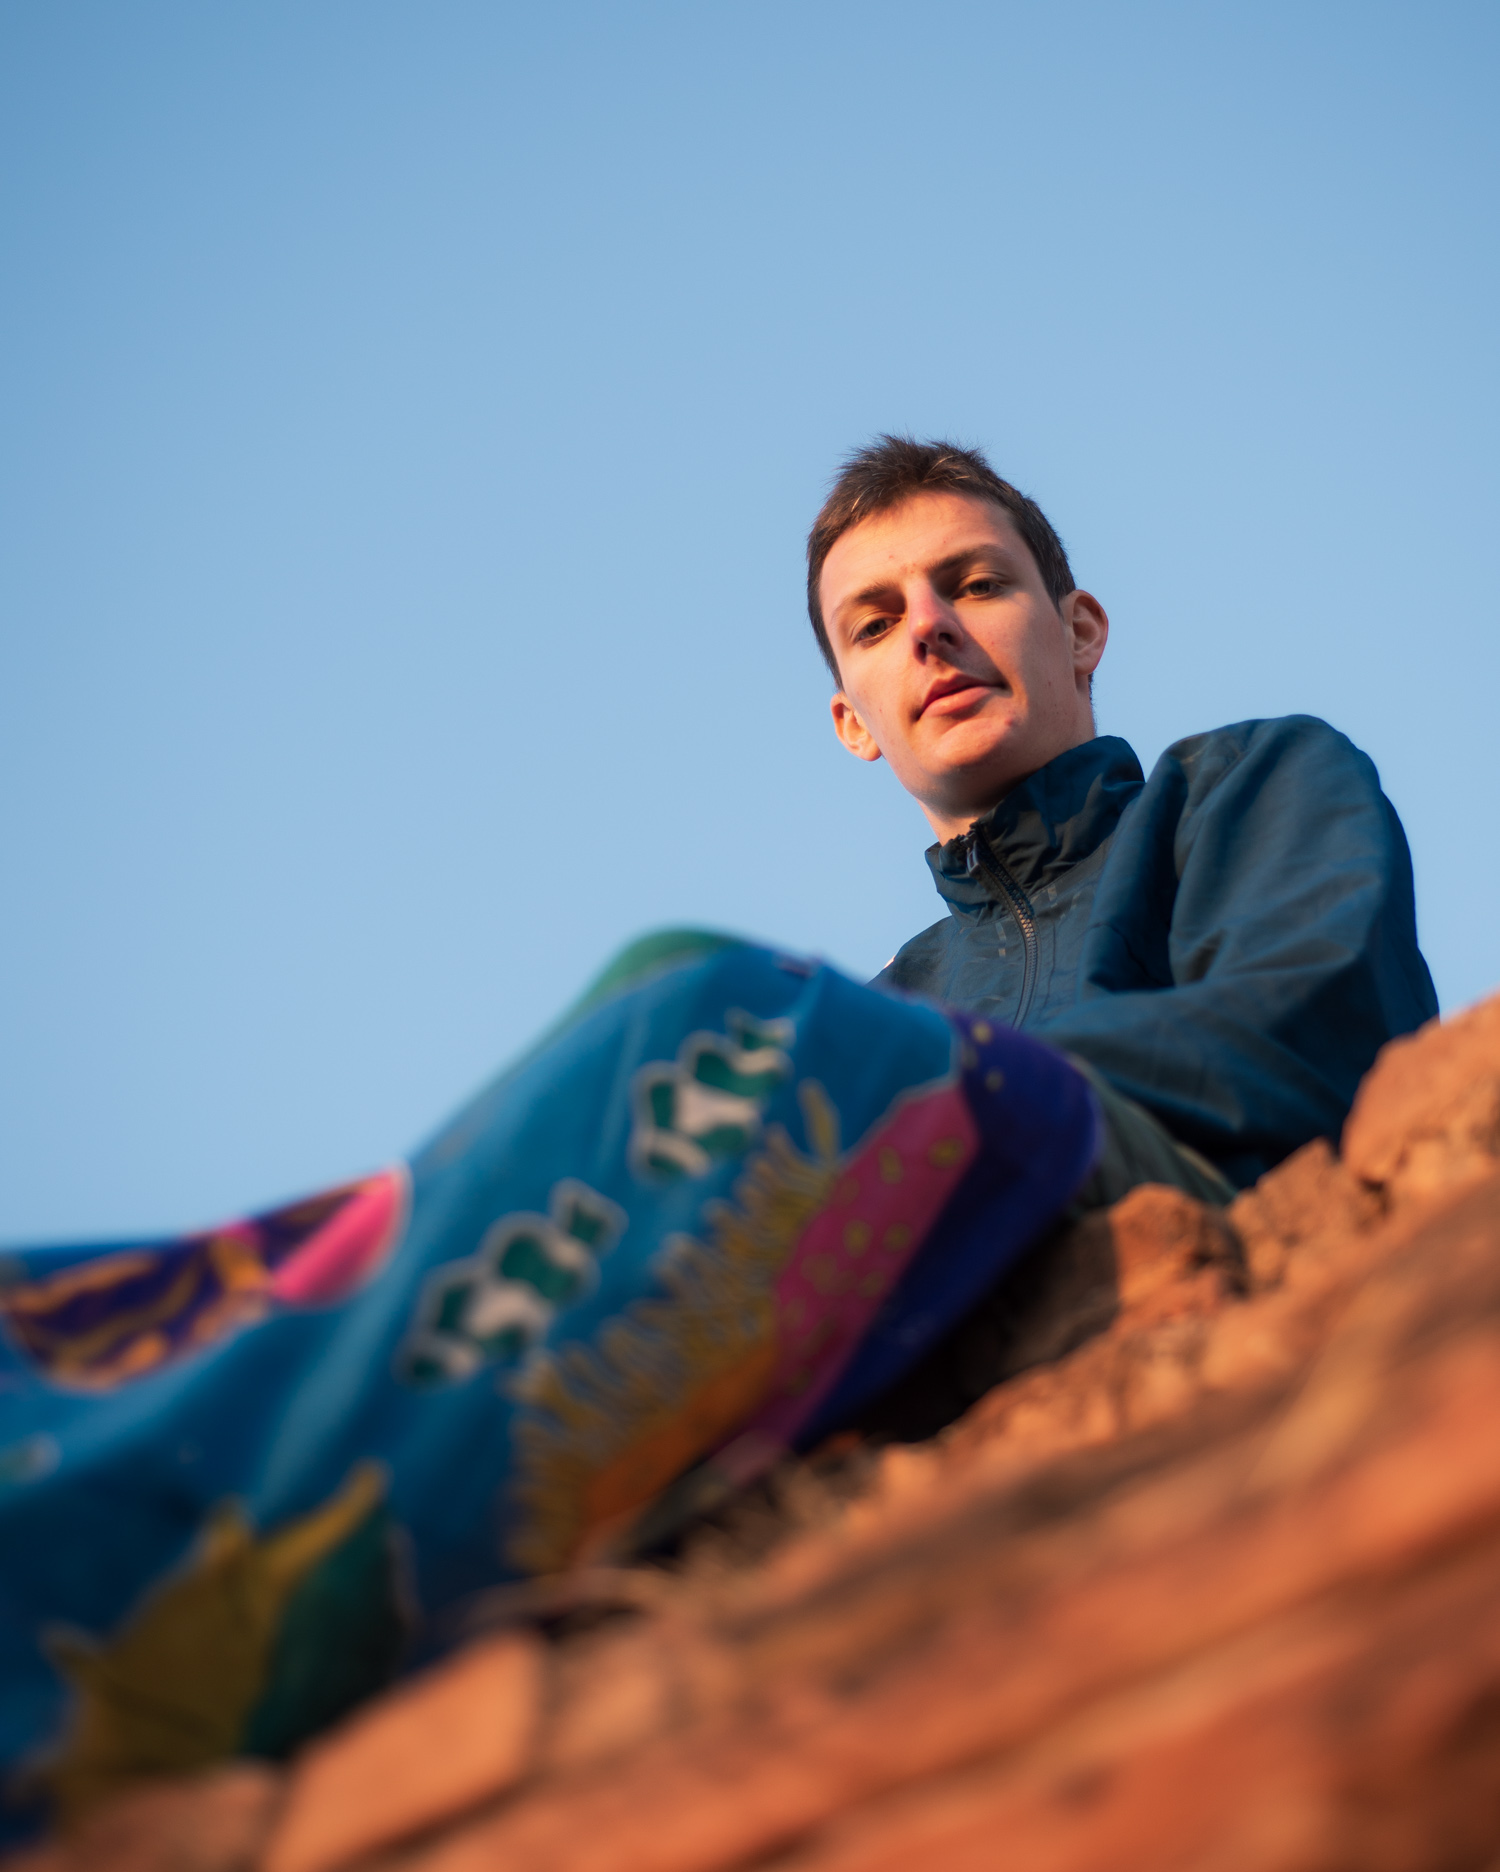 Bagan: Lucas was prepared with a blanket to watch sunrise from the top of the stupa.